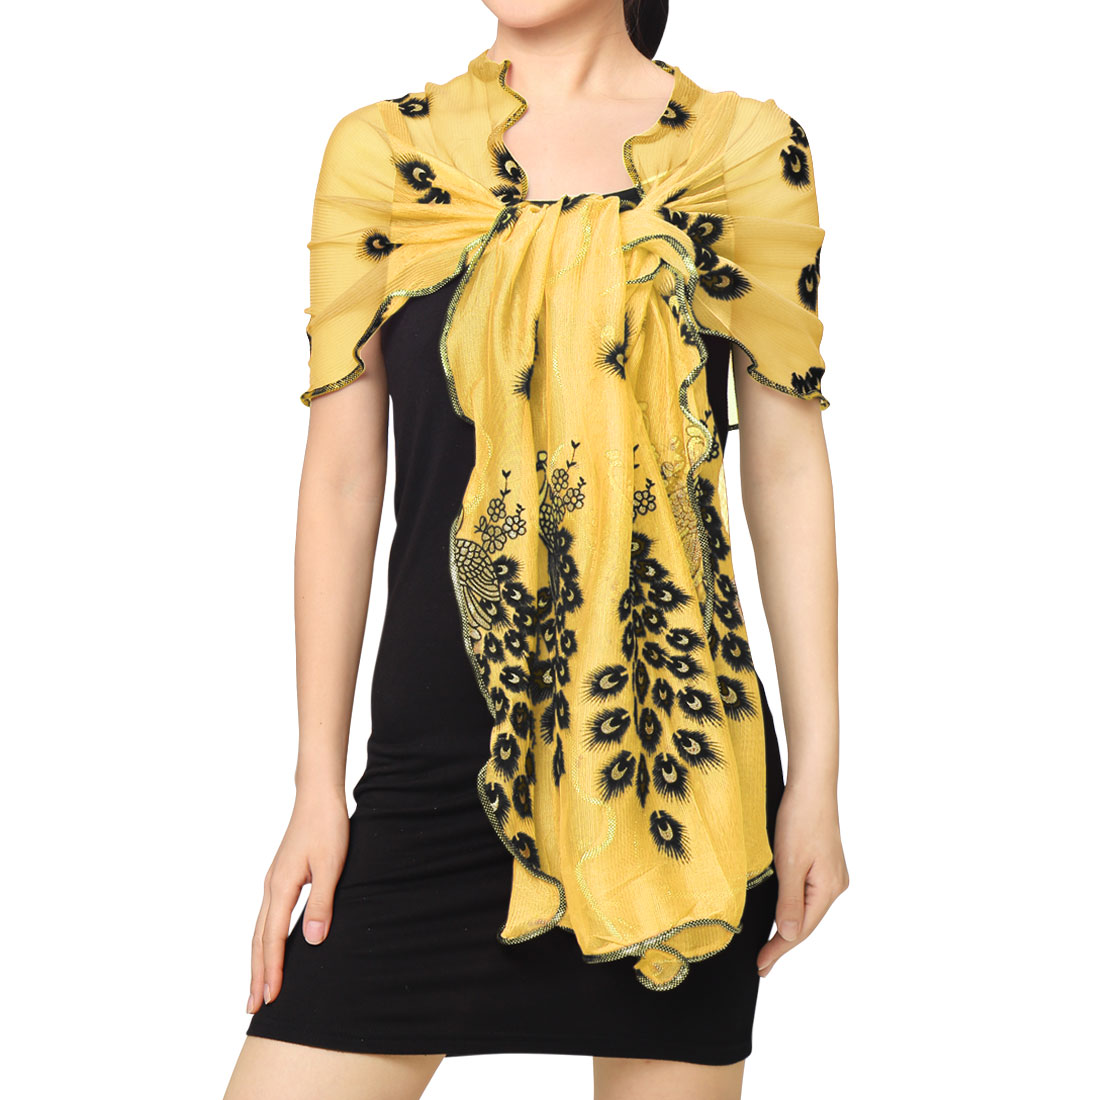 Tasharina Women's Rectangle Semi Sheer Floral Peacock Pattern Mesh Scarf Yellow